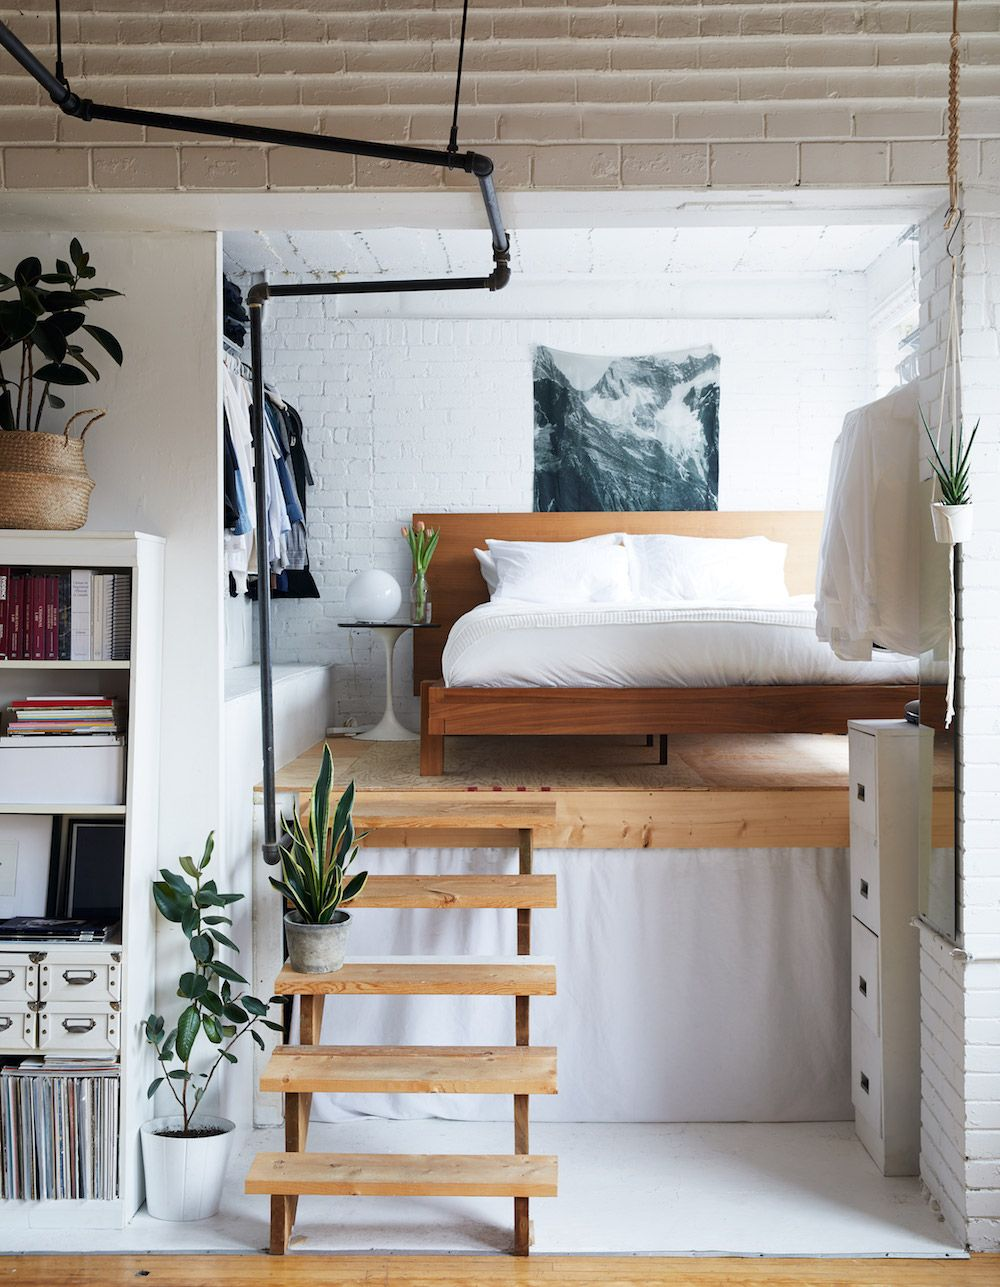 A Book-Filled Loft in Toronto | Toronto, Lofts and Toronto lofts